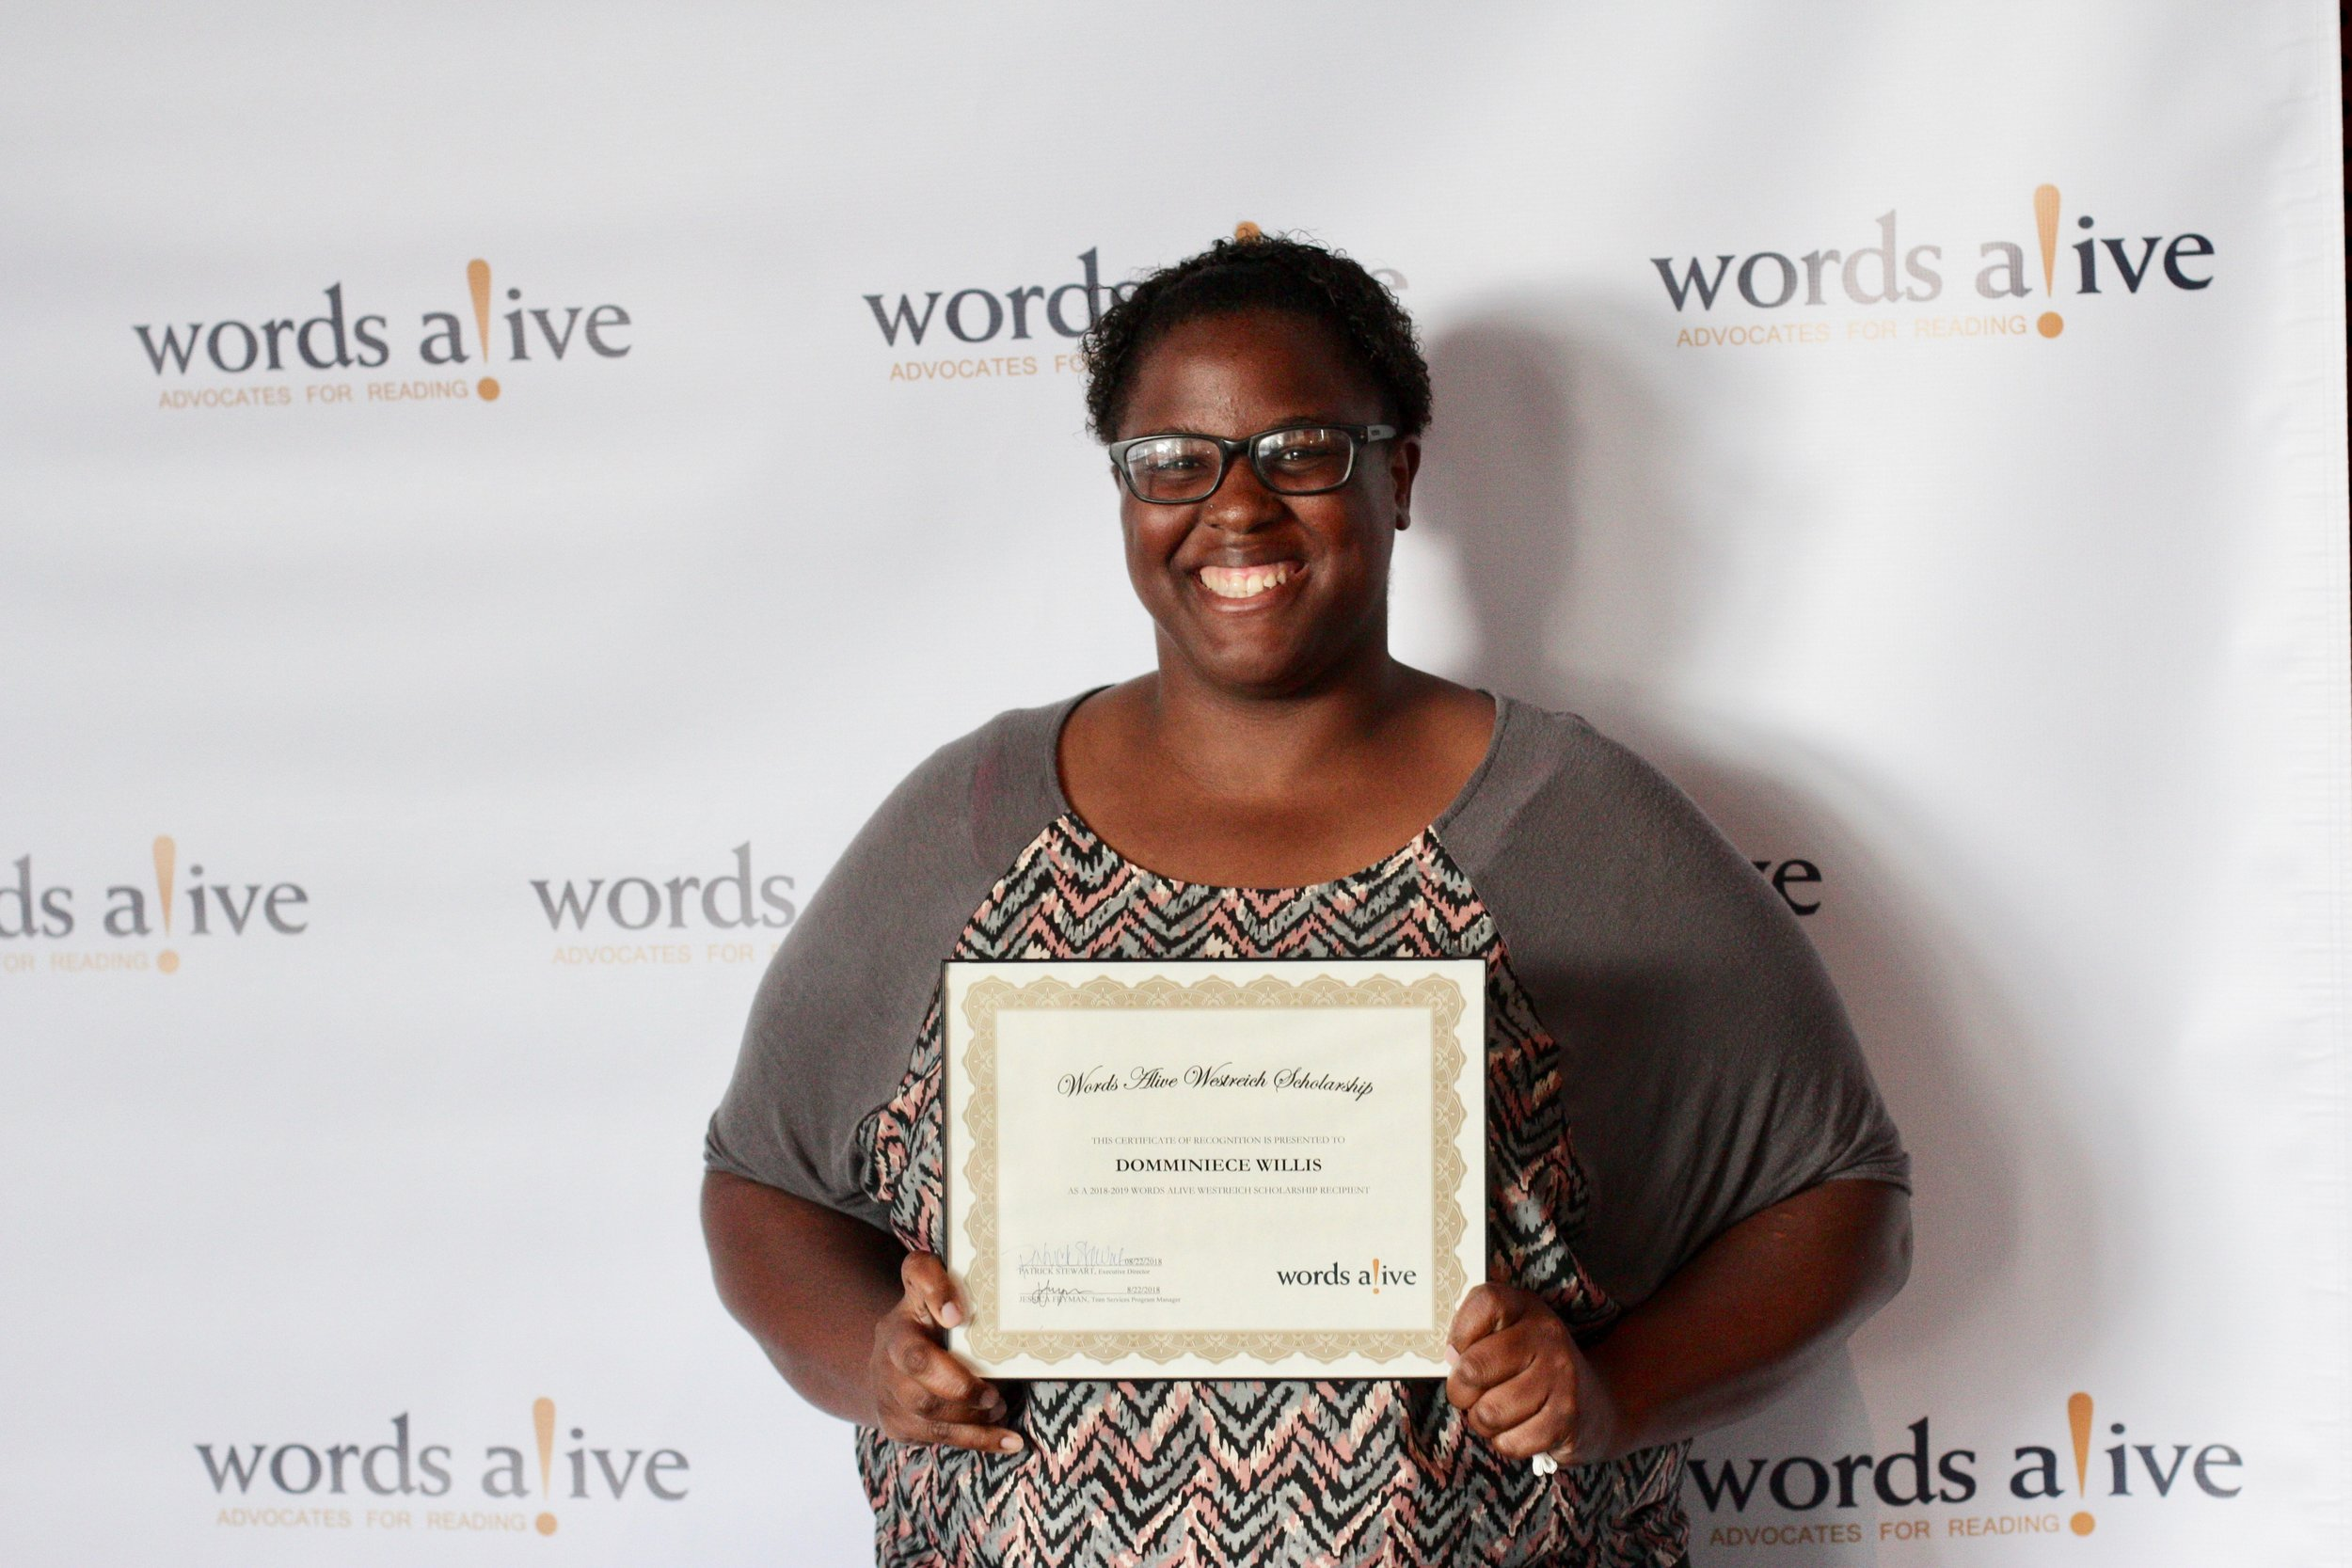 An image of Domminiece Willis standing at the 2018 WAWS Award Ceremony.